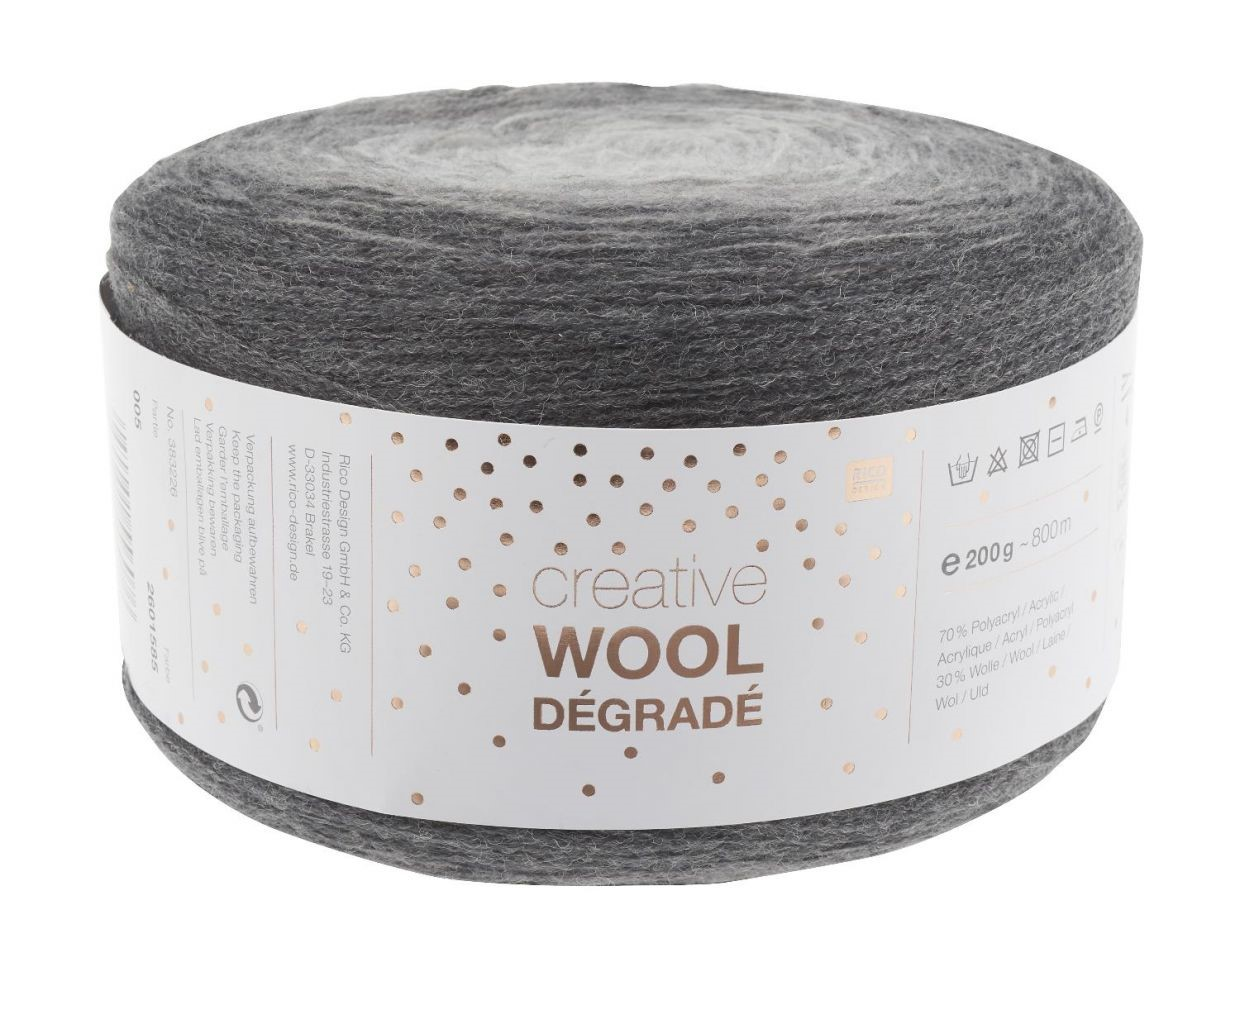 5 Creative wool degrade rico.jpg